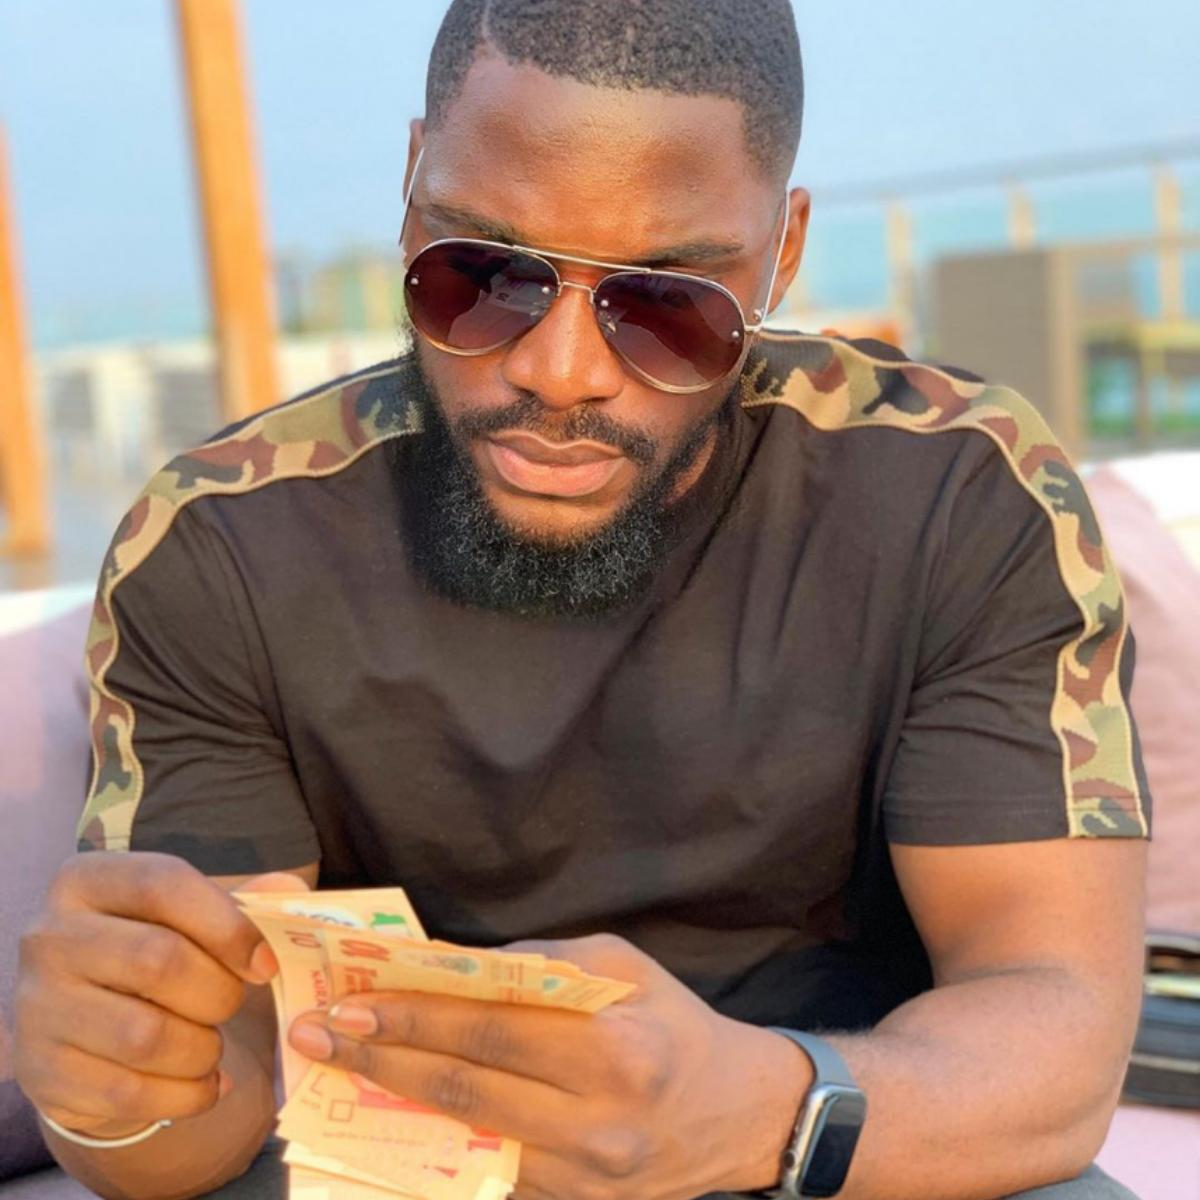 Tobi Bakre Hard Work Without Being Smart About It Suffer Head